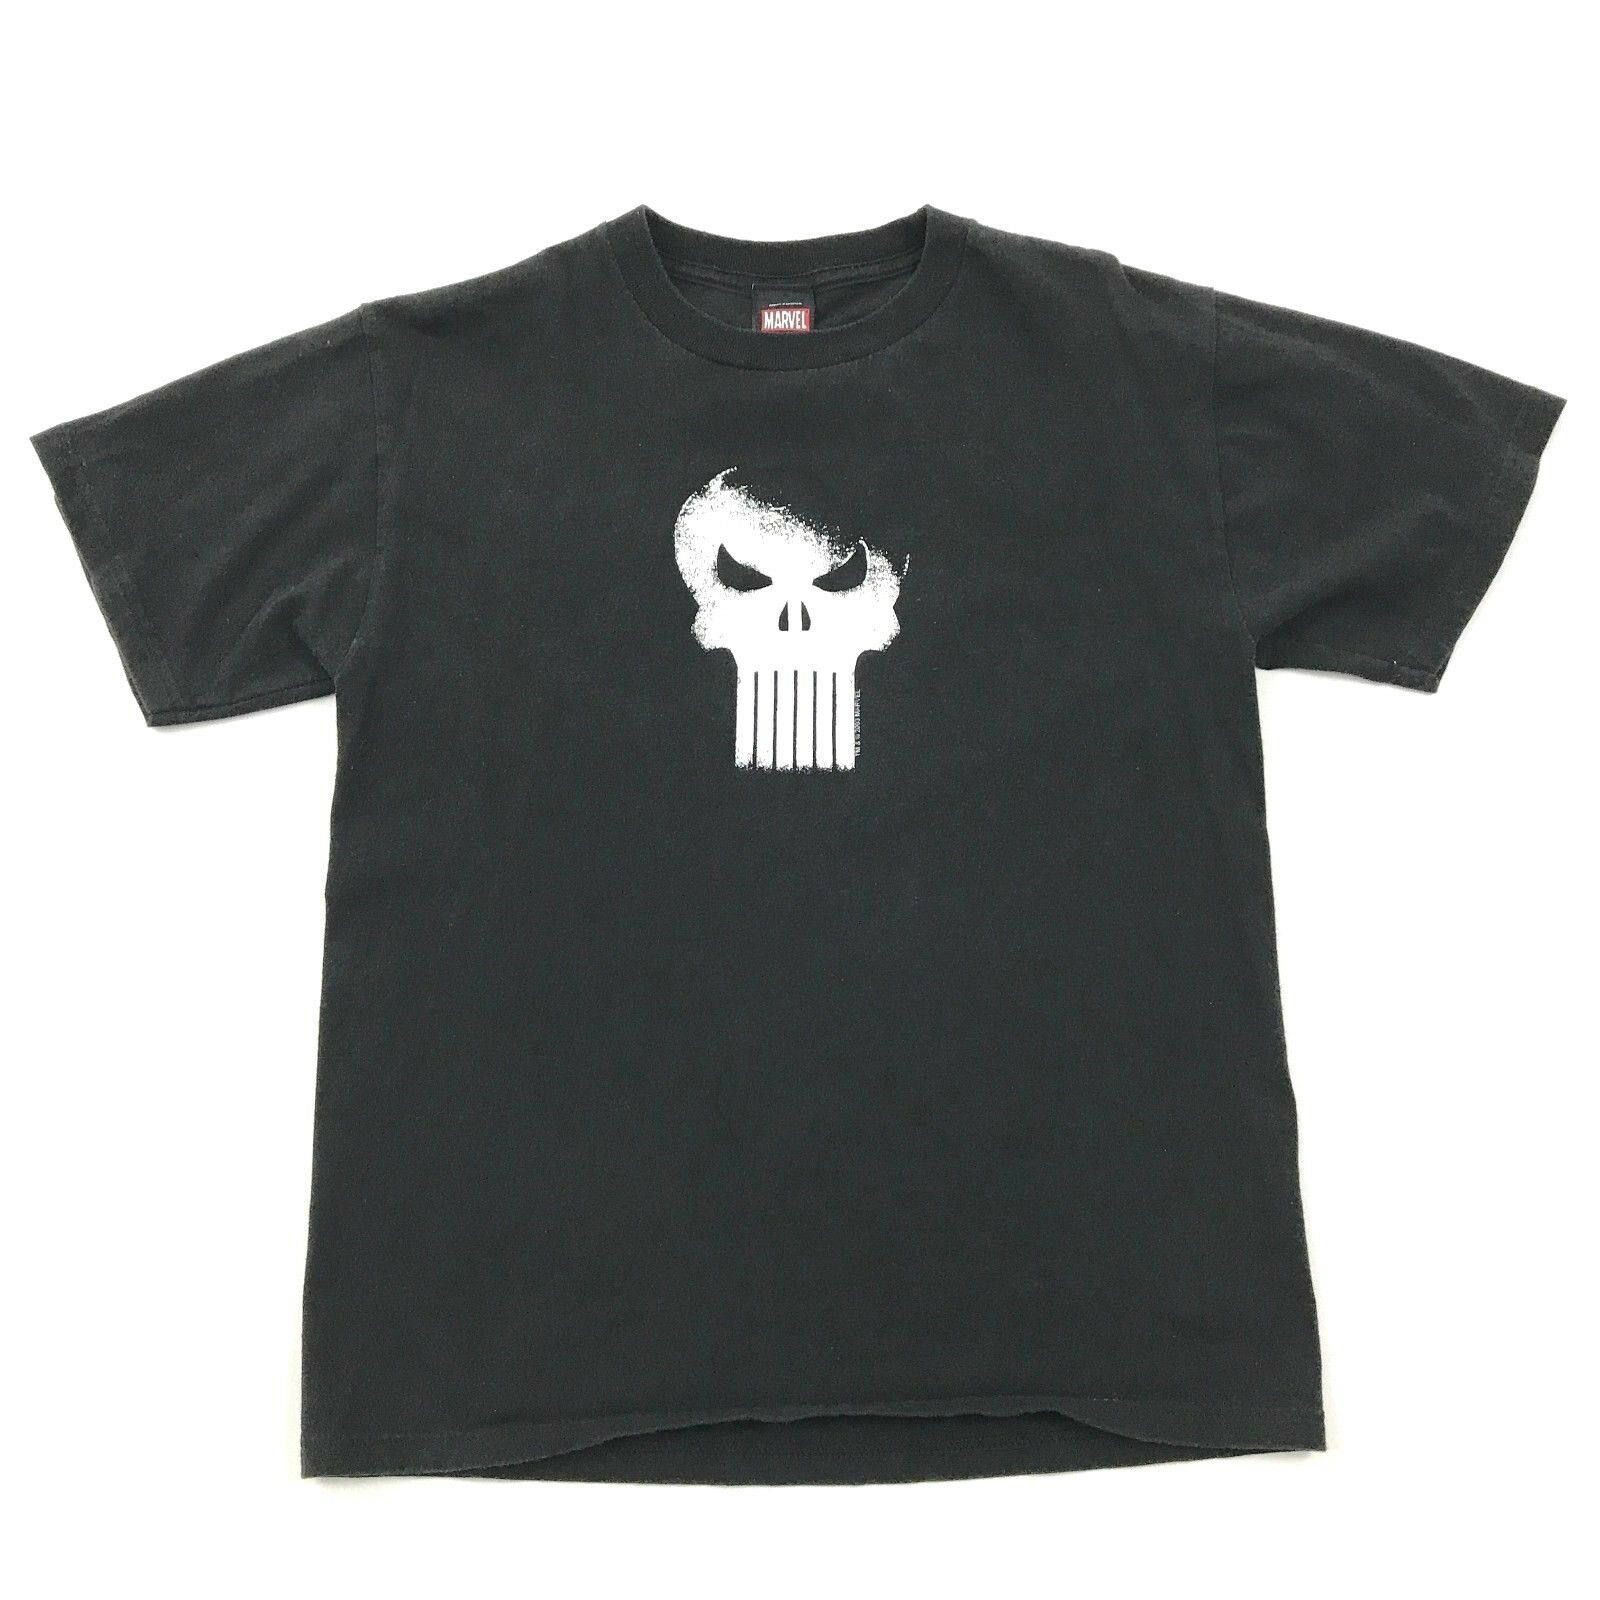 THE PUNISHER Promo Tee Size Medium MARVEL Shirt Short Sleeve RARE 2003 Promotion